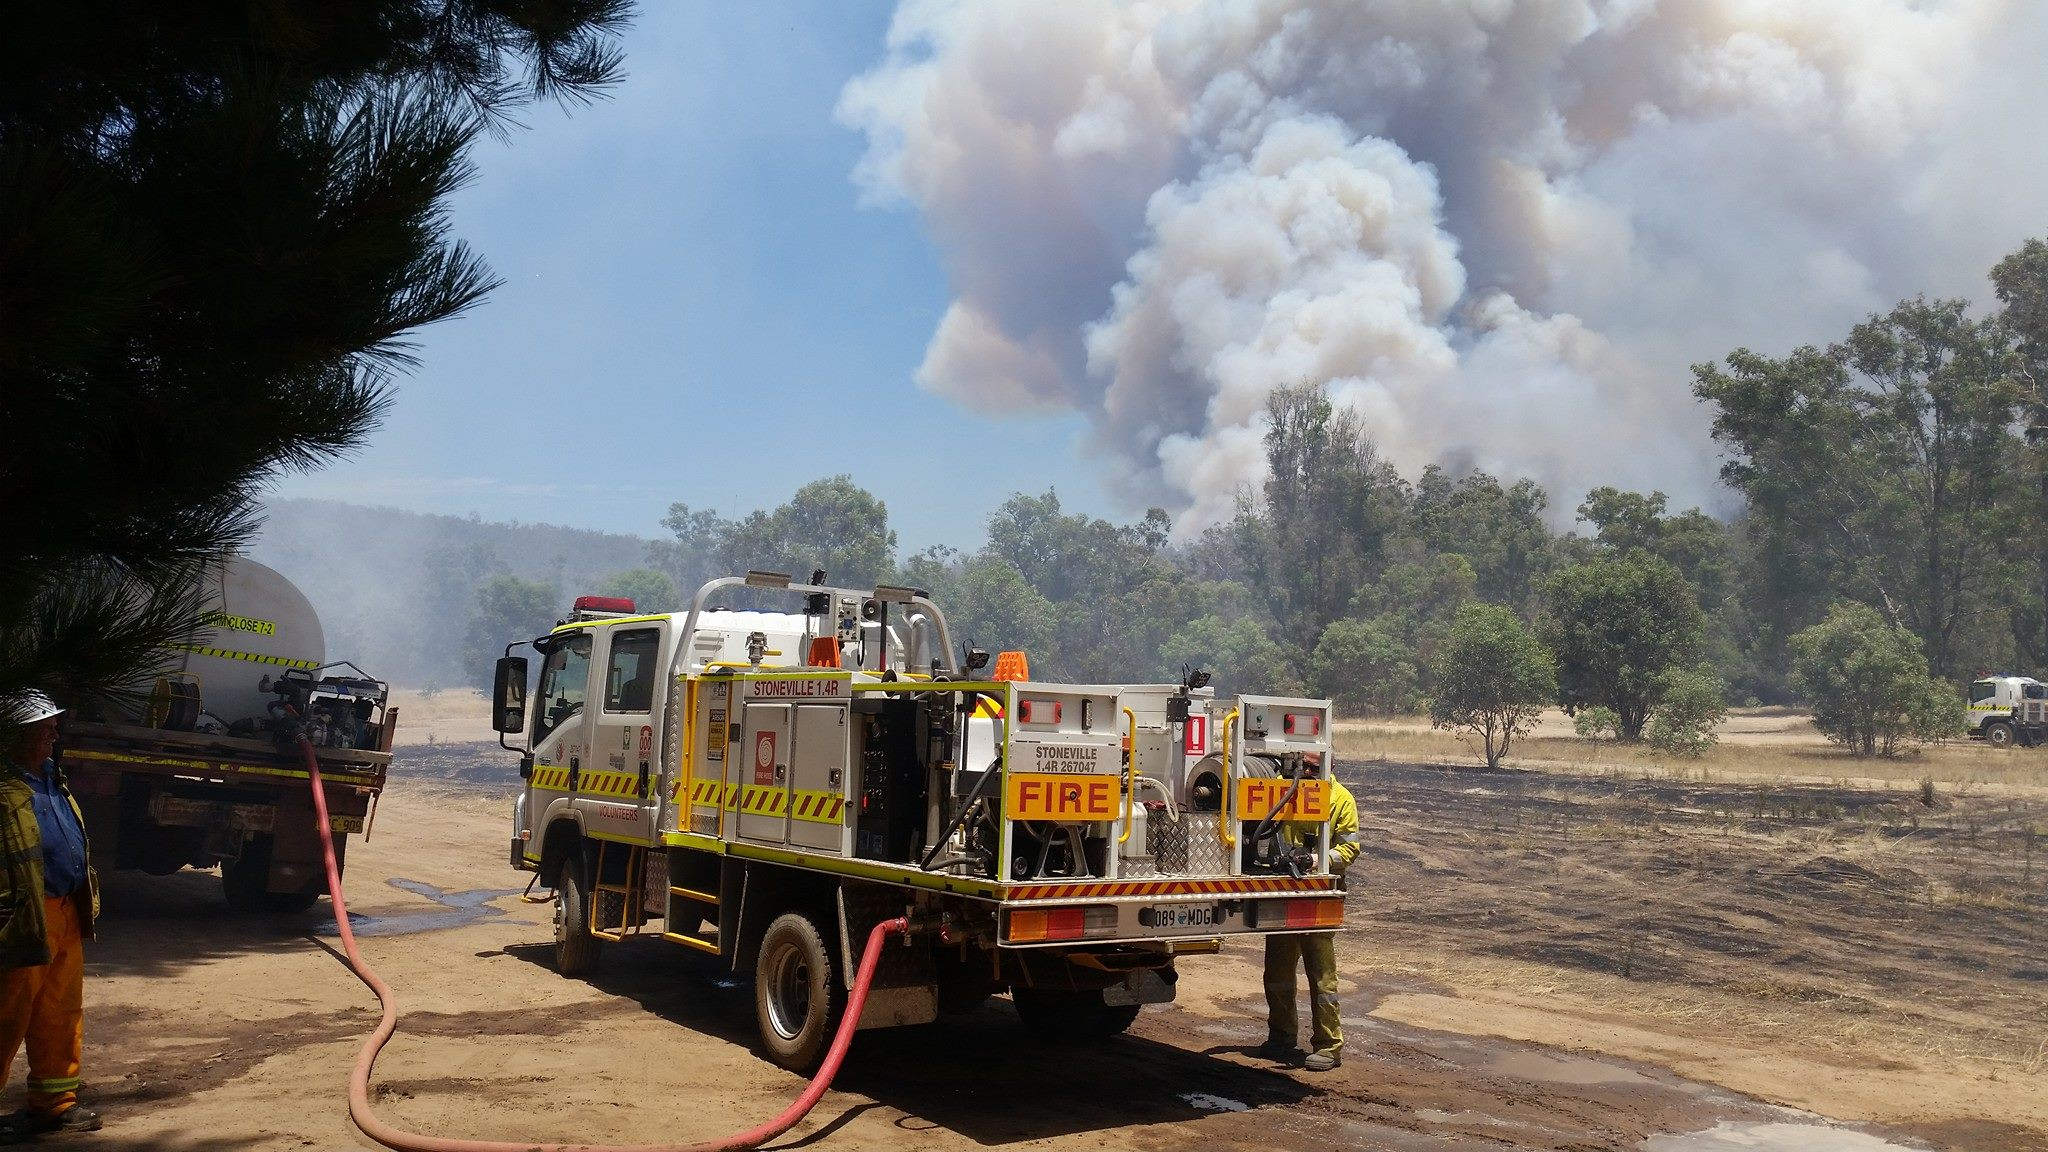 The Stoneville VBFB in action at the Mundaring fire 14-01-2018. Photo: Facebook